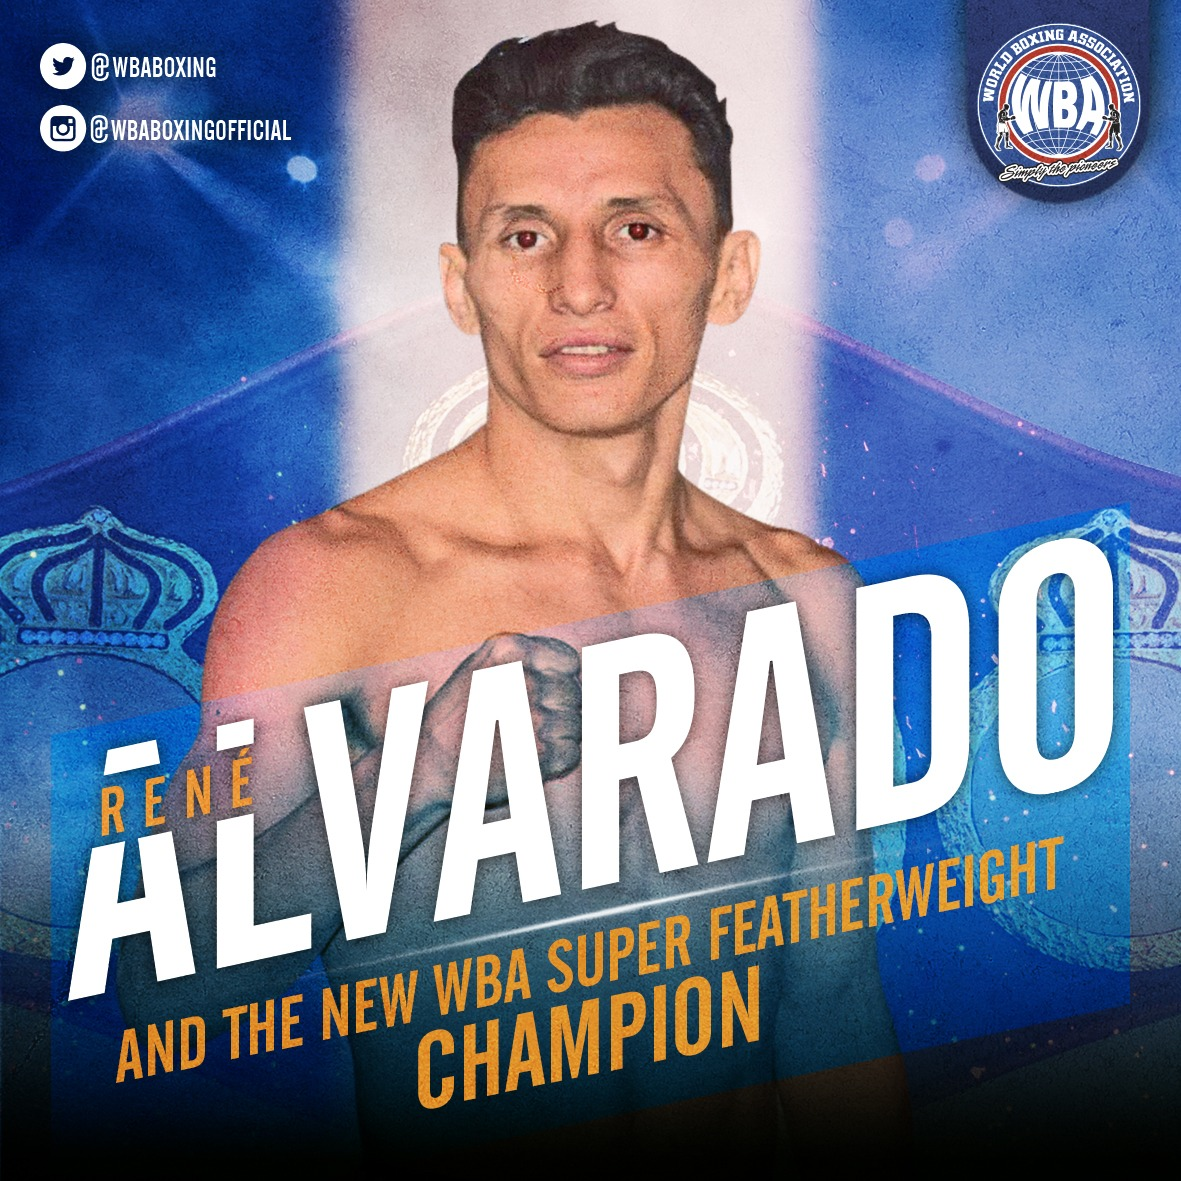 Rene Alvarado is the new WBA world champion